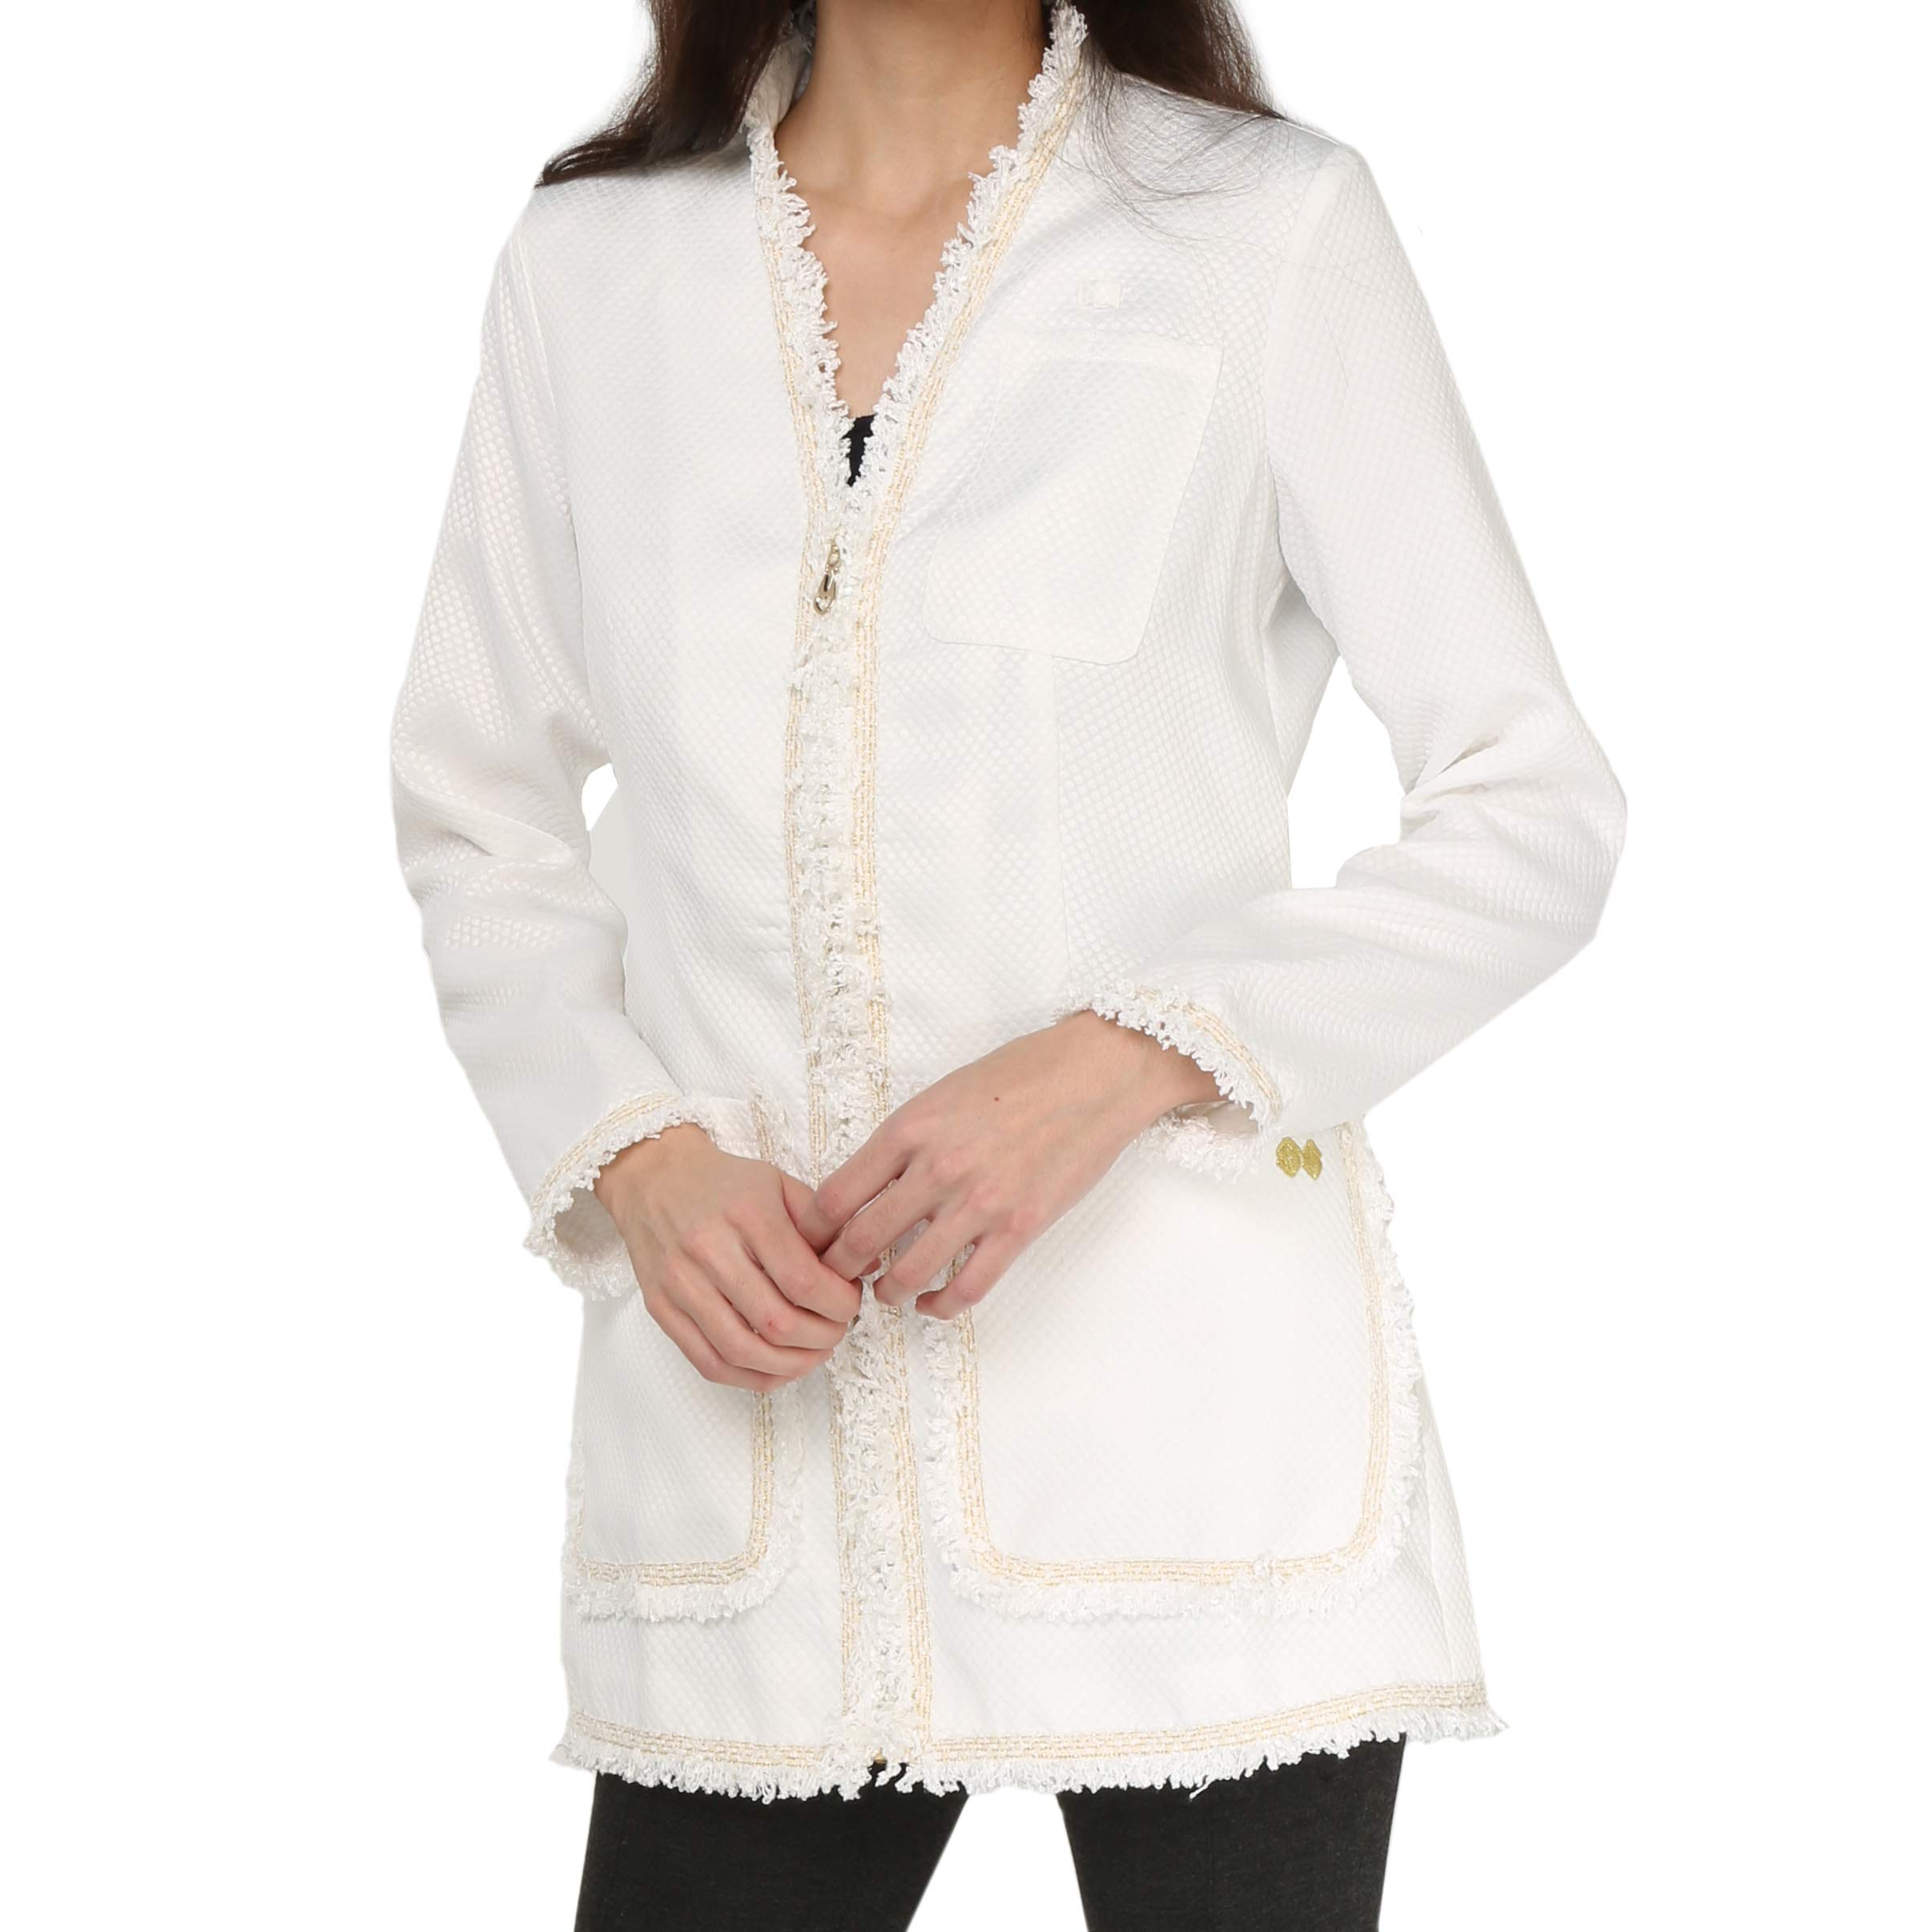 Susan Sova Women's Addyson Fashion Lab Coat. Best for Medical & Cosmetic Professionals (Large)